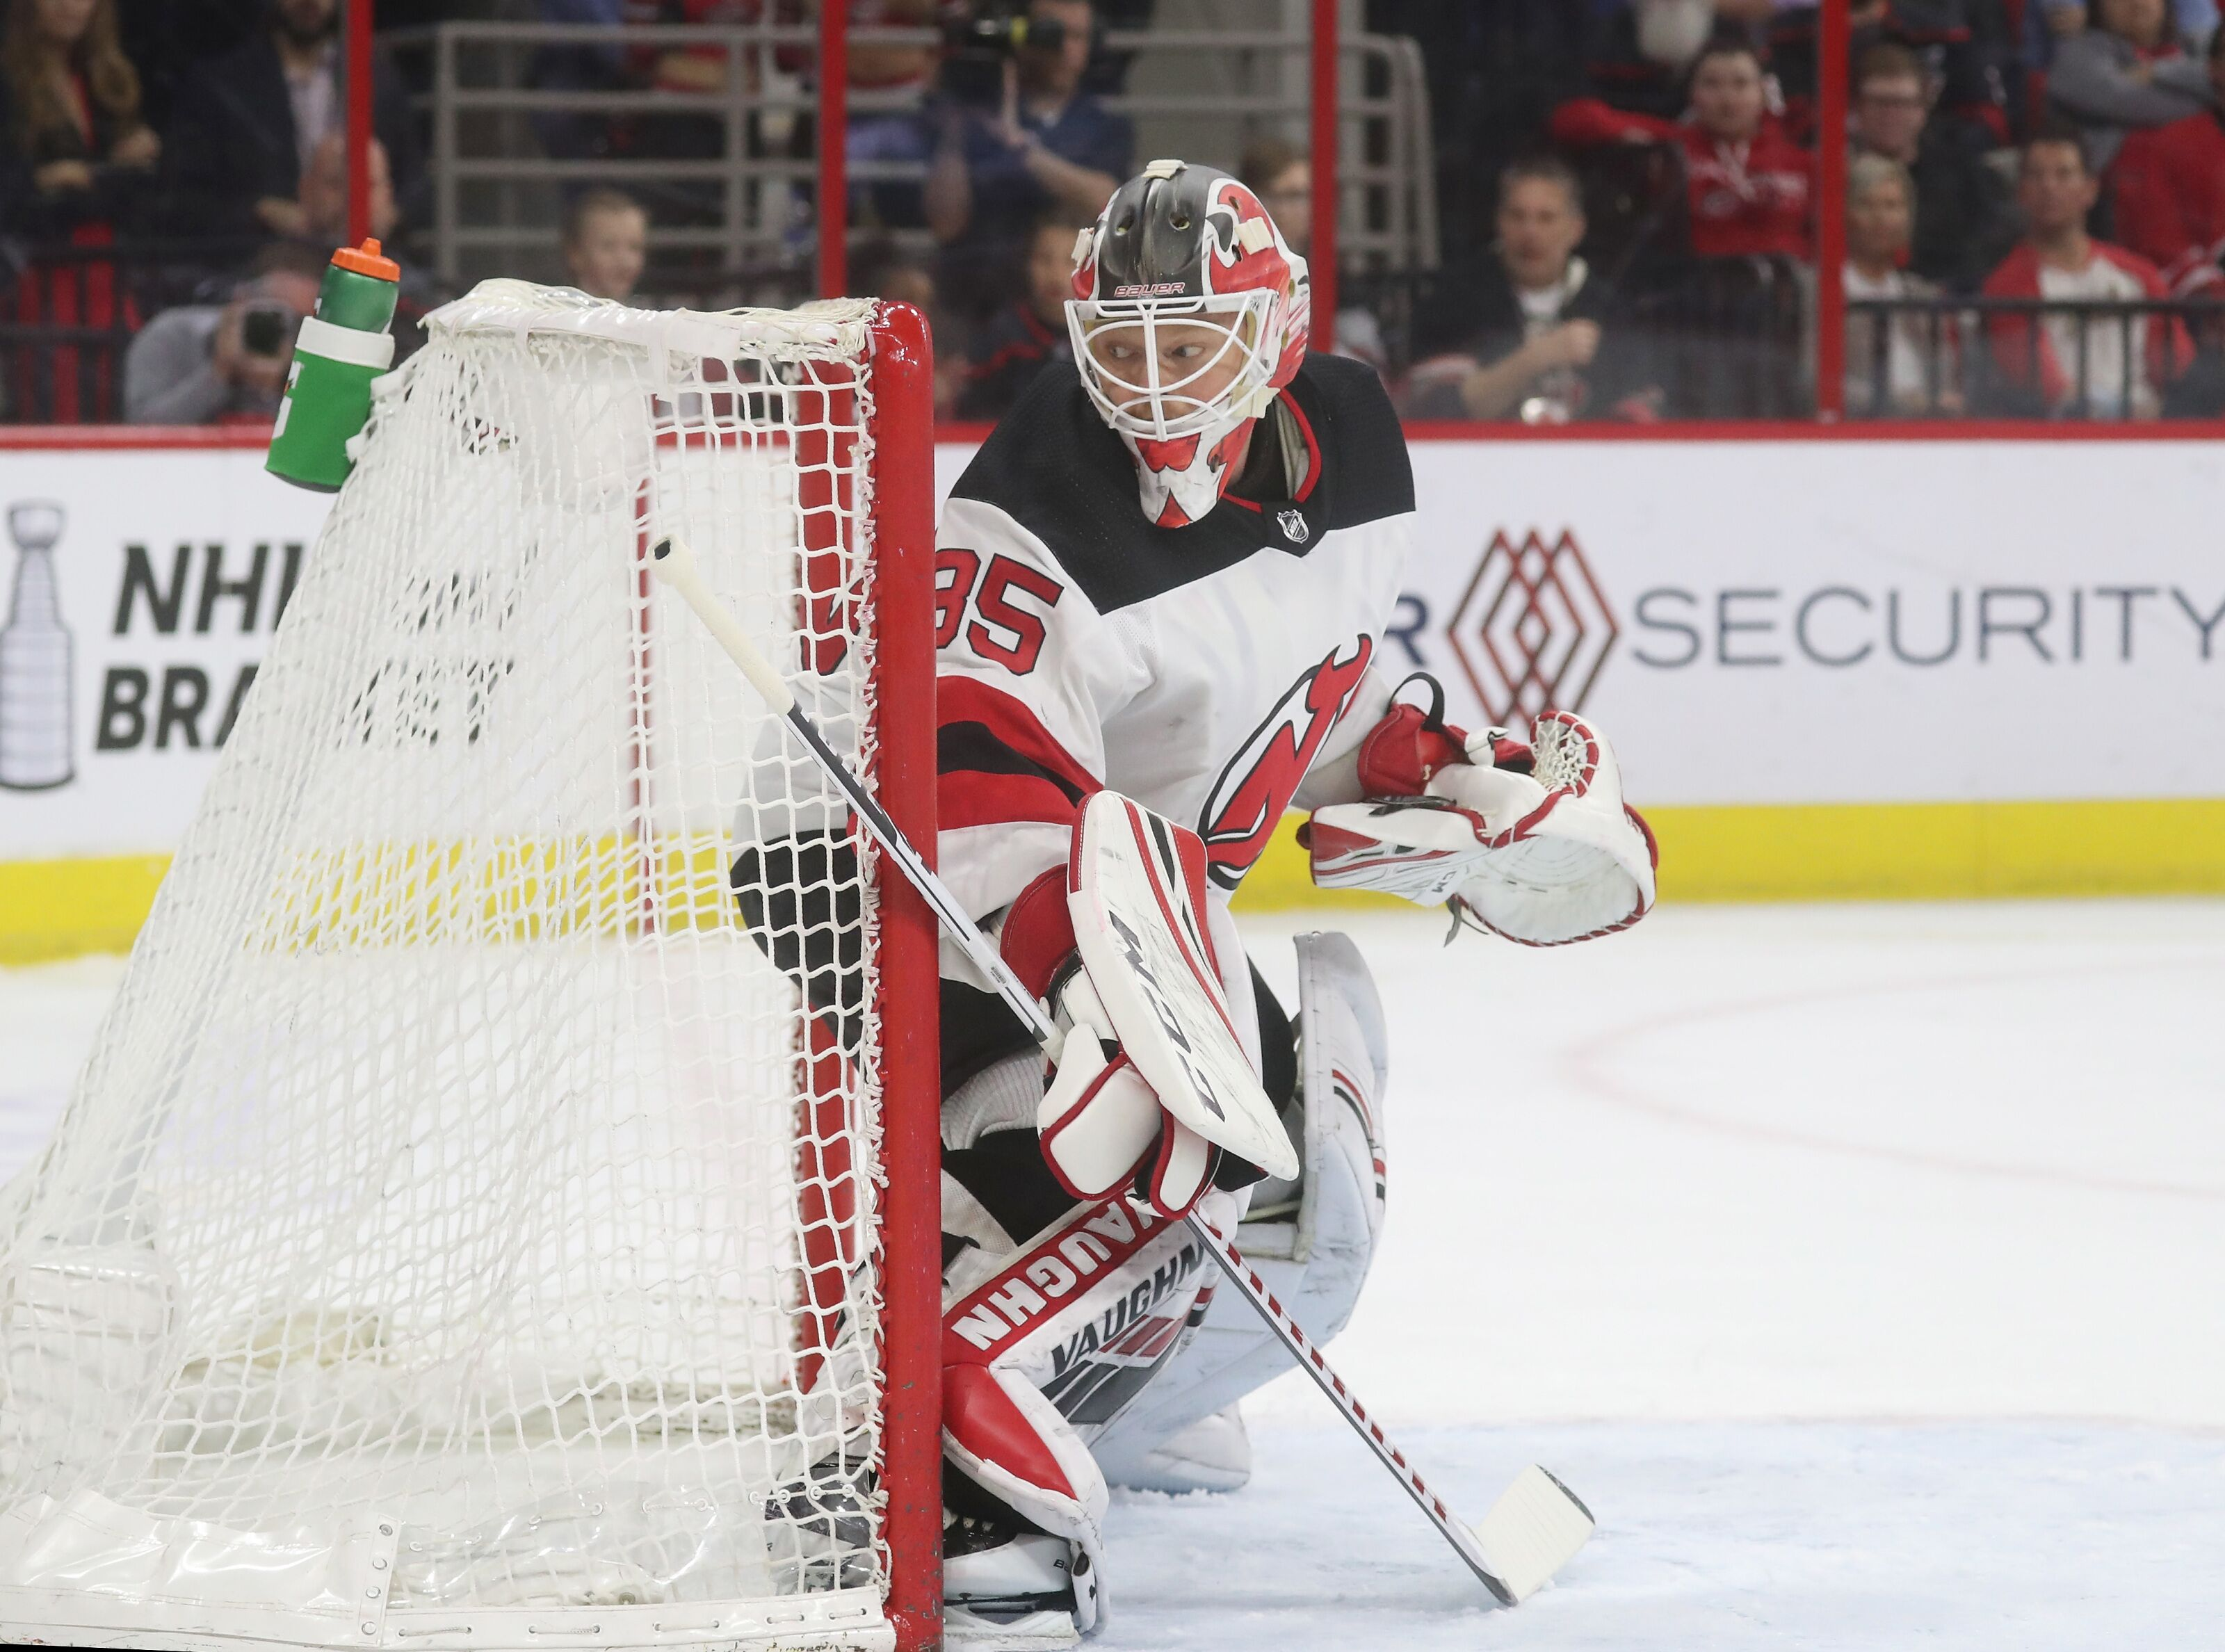 New Jersey Devils: Cory Schneider Leads The Devils To Victory